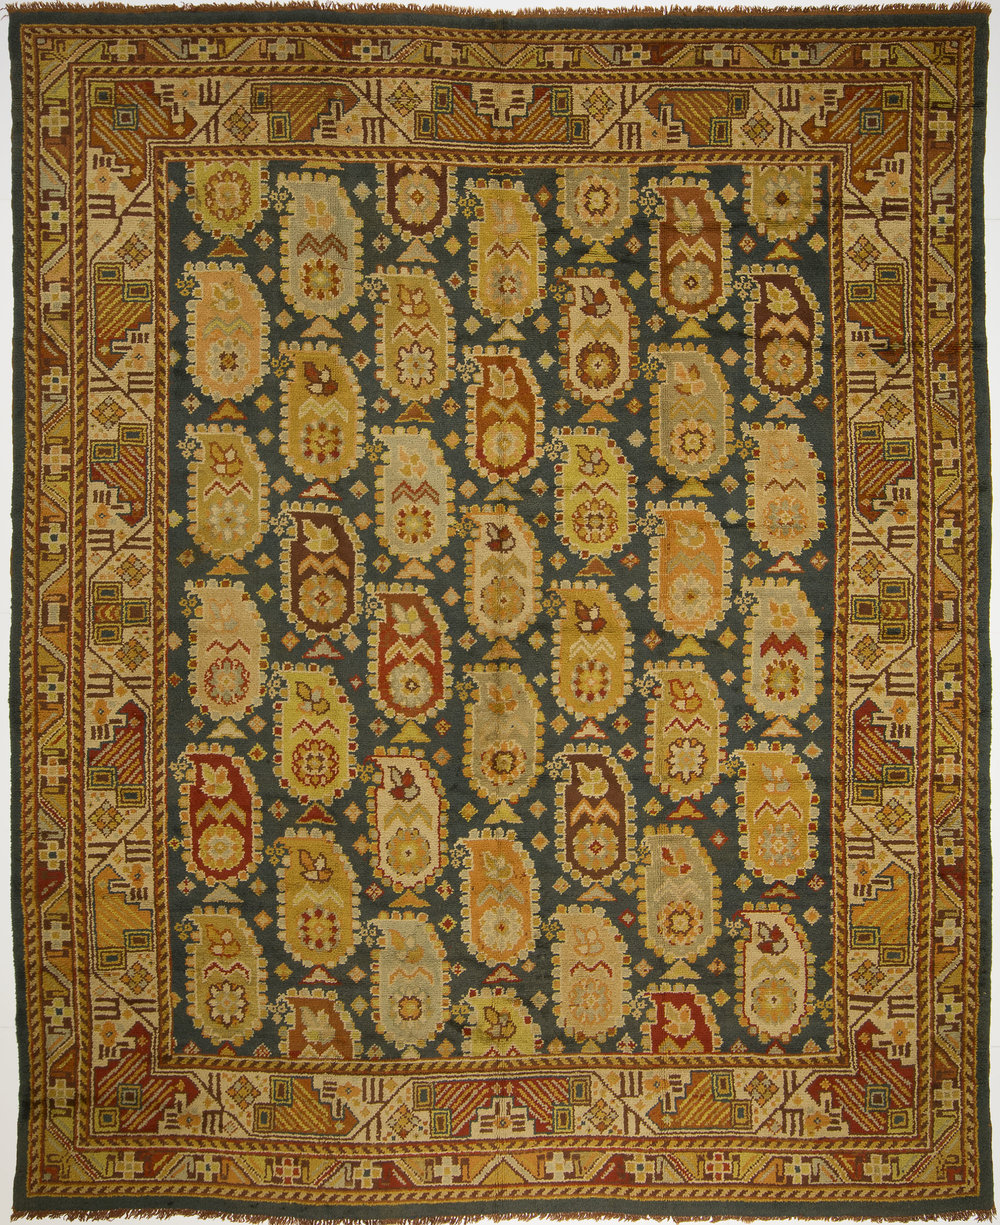 "Donegal Carpet 14' 5"" x 11' 8"""